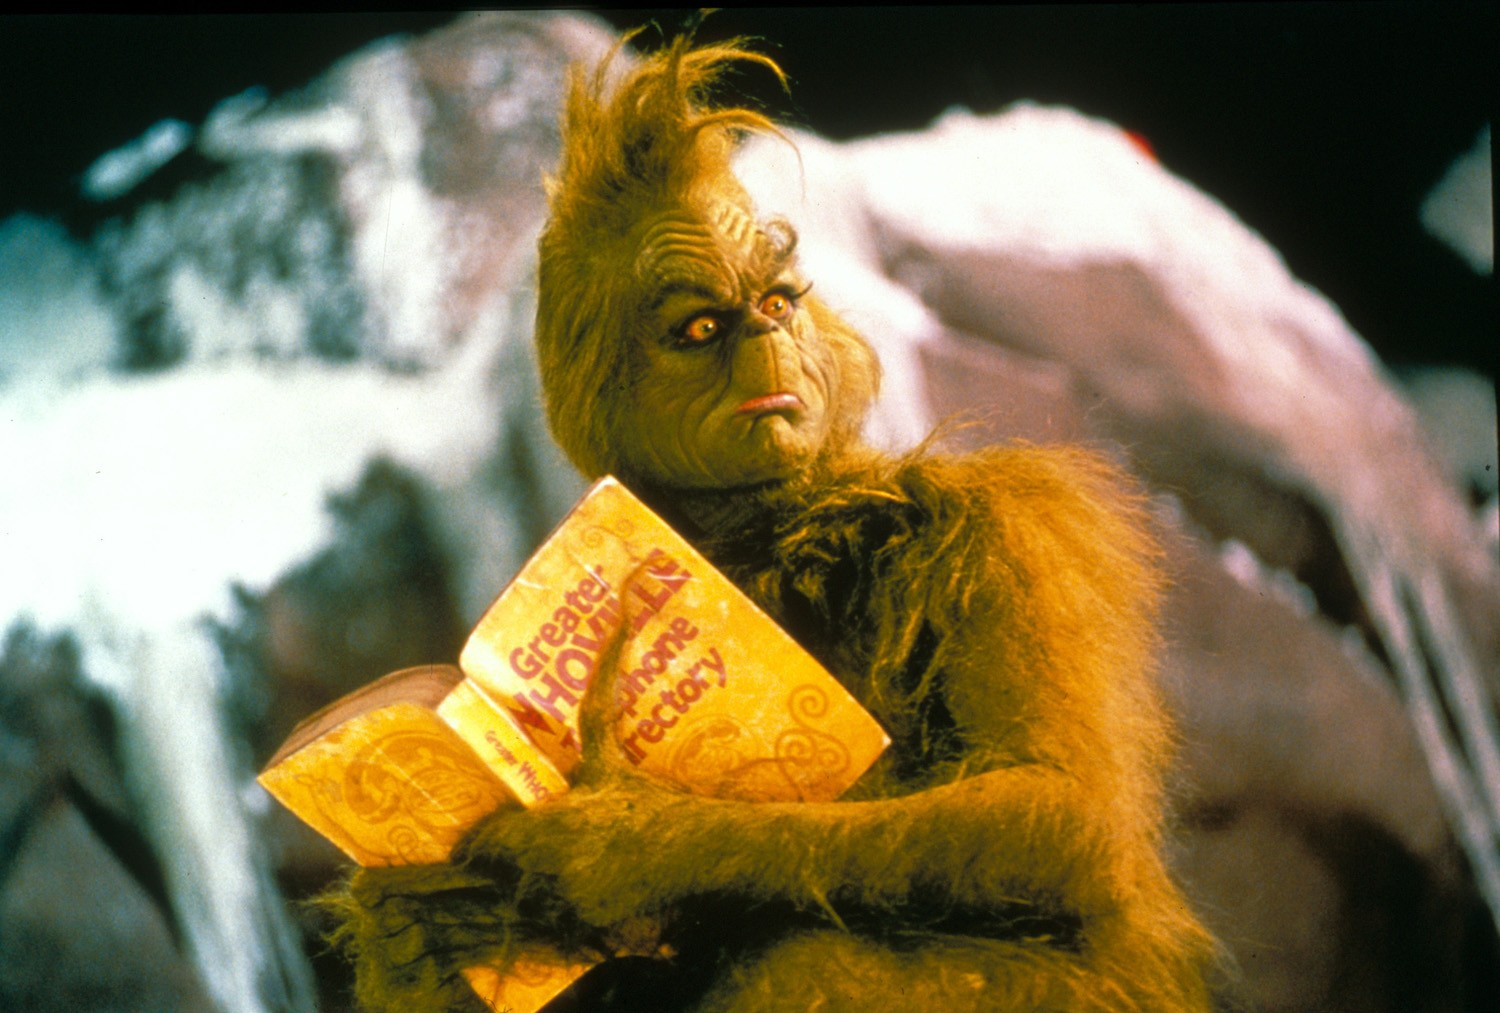 The Grinch | Pooh's Adventures Wiki | FANDOM powered by Wikia